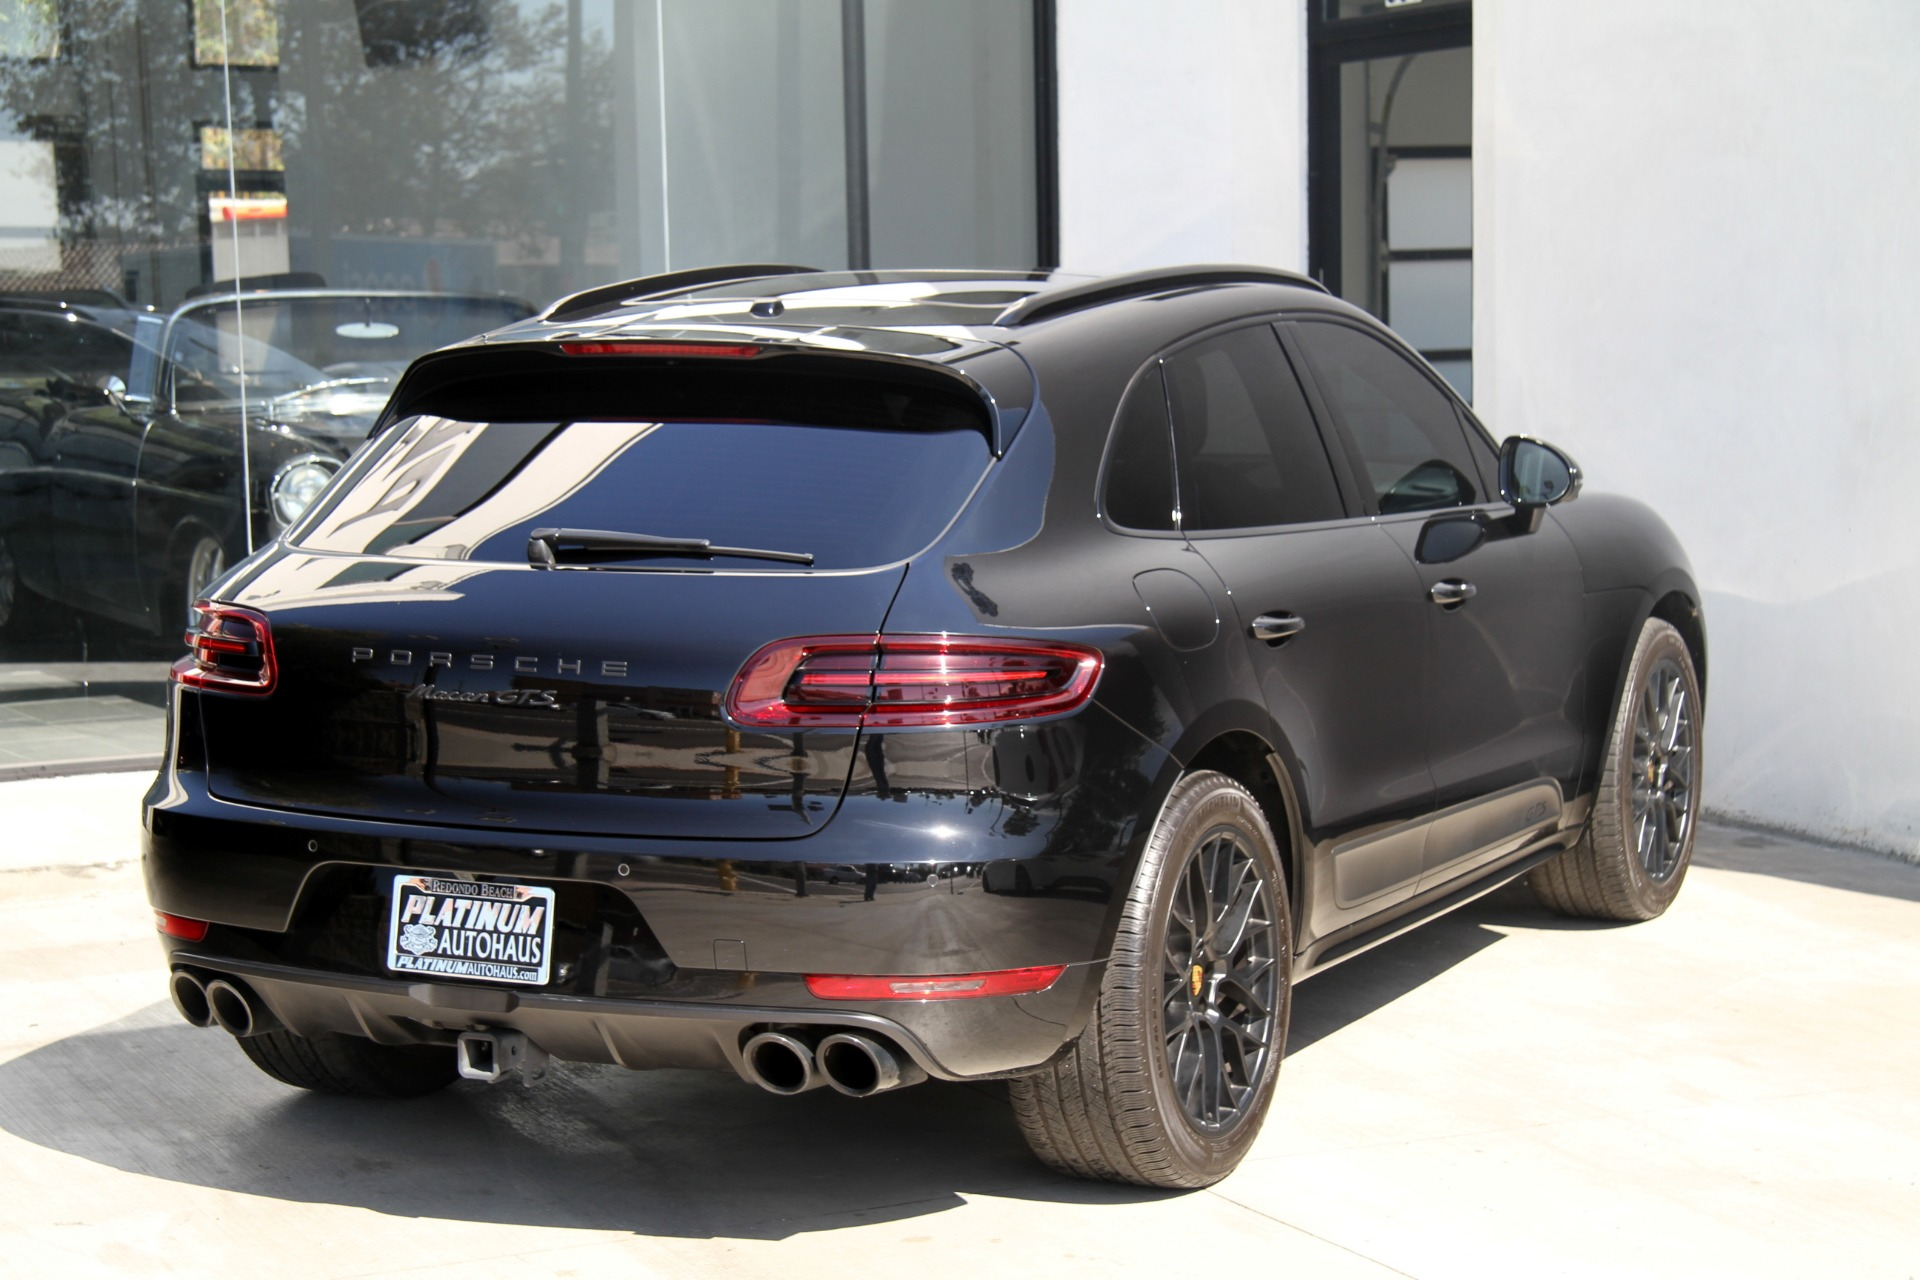 2017 Porsche Macan Gts Stock 6292 For Sale Near Redondo Beach Ca Ca Porsche Dealer